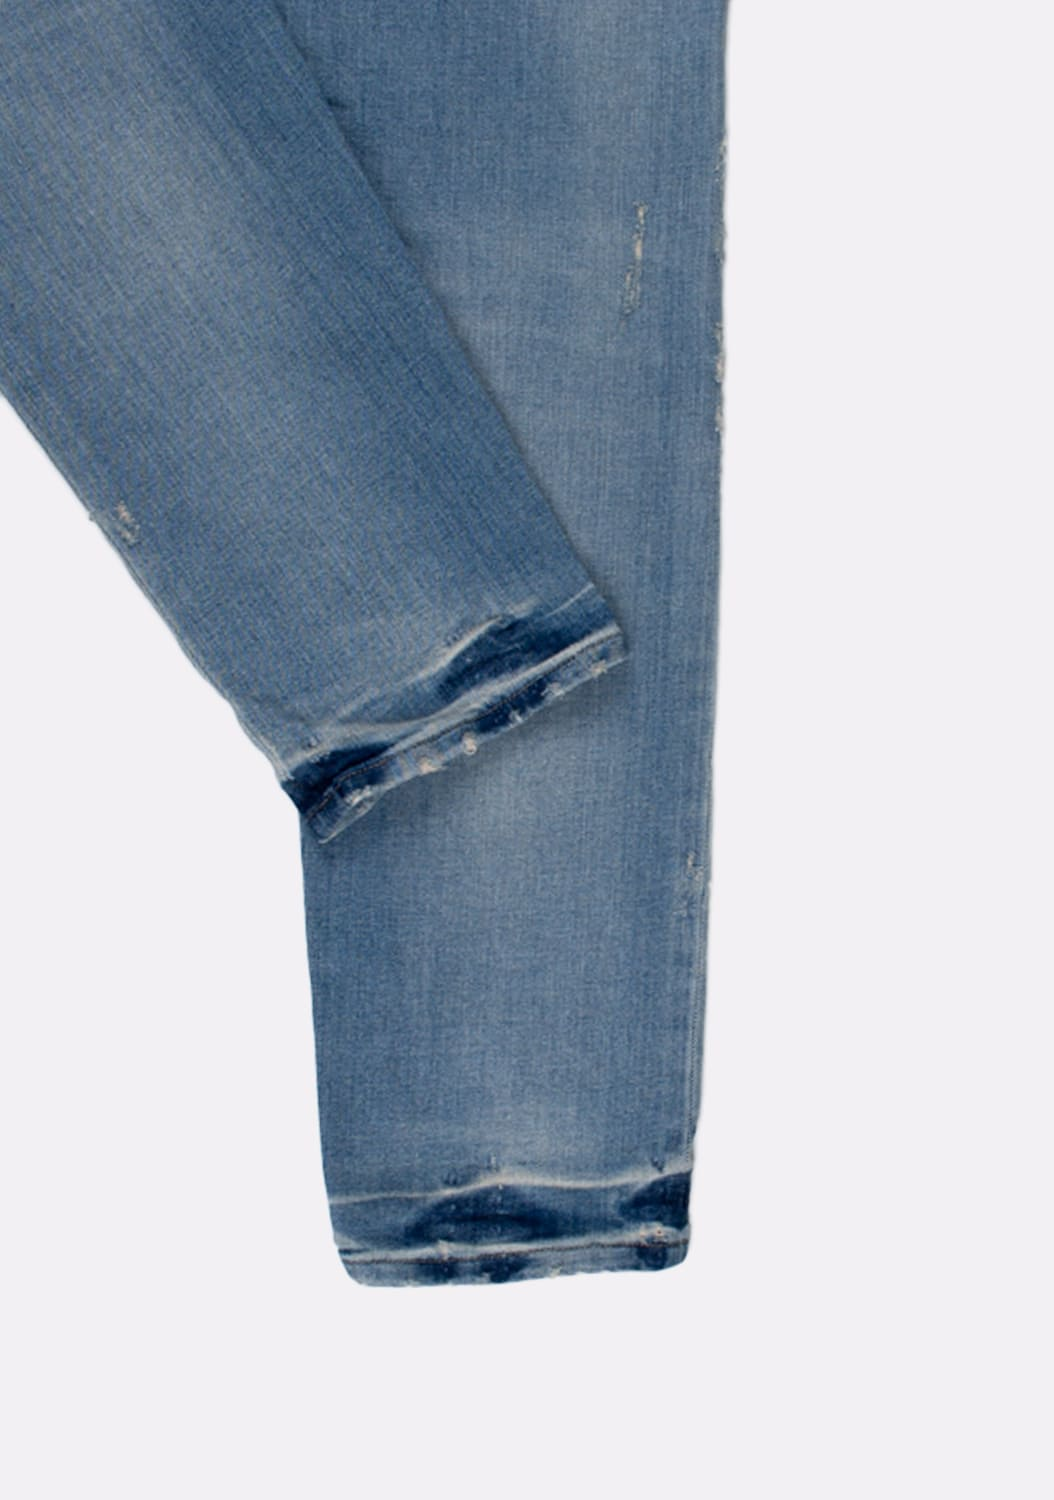 Dolce&Gabbana-Main-Line-14-Stretch-Distressed-Men-Jeans-Size-52-ITA (7)